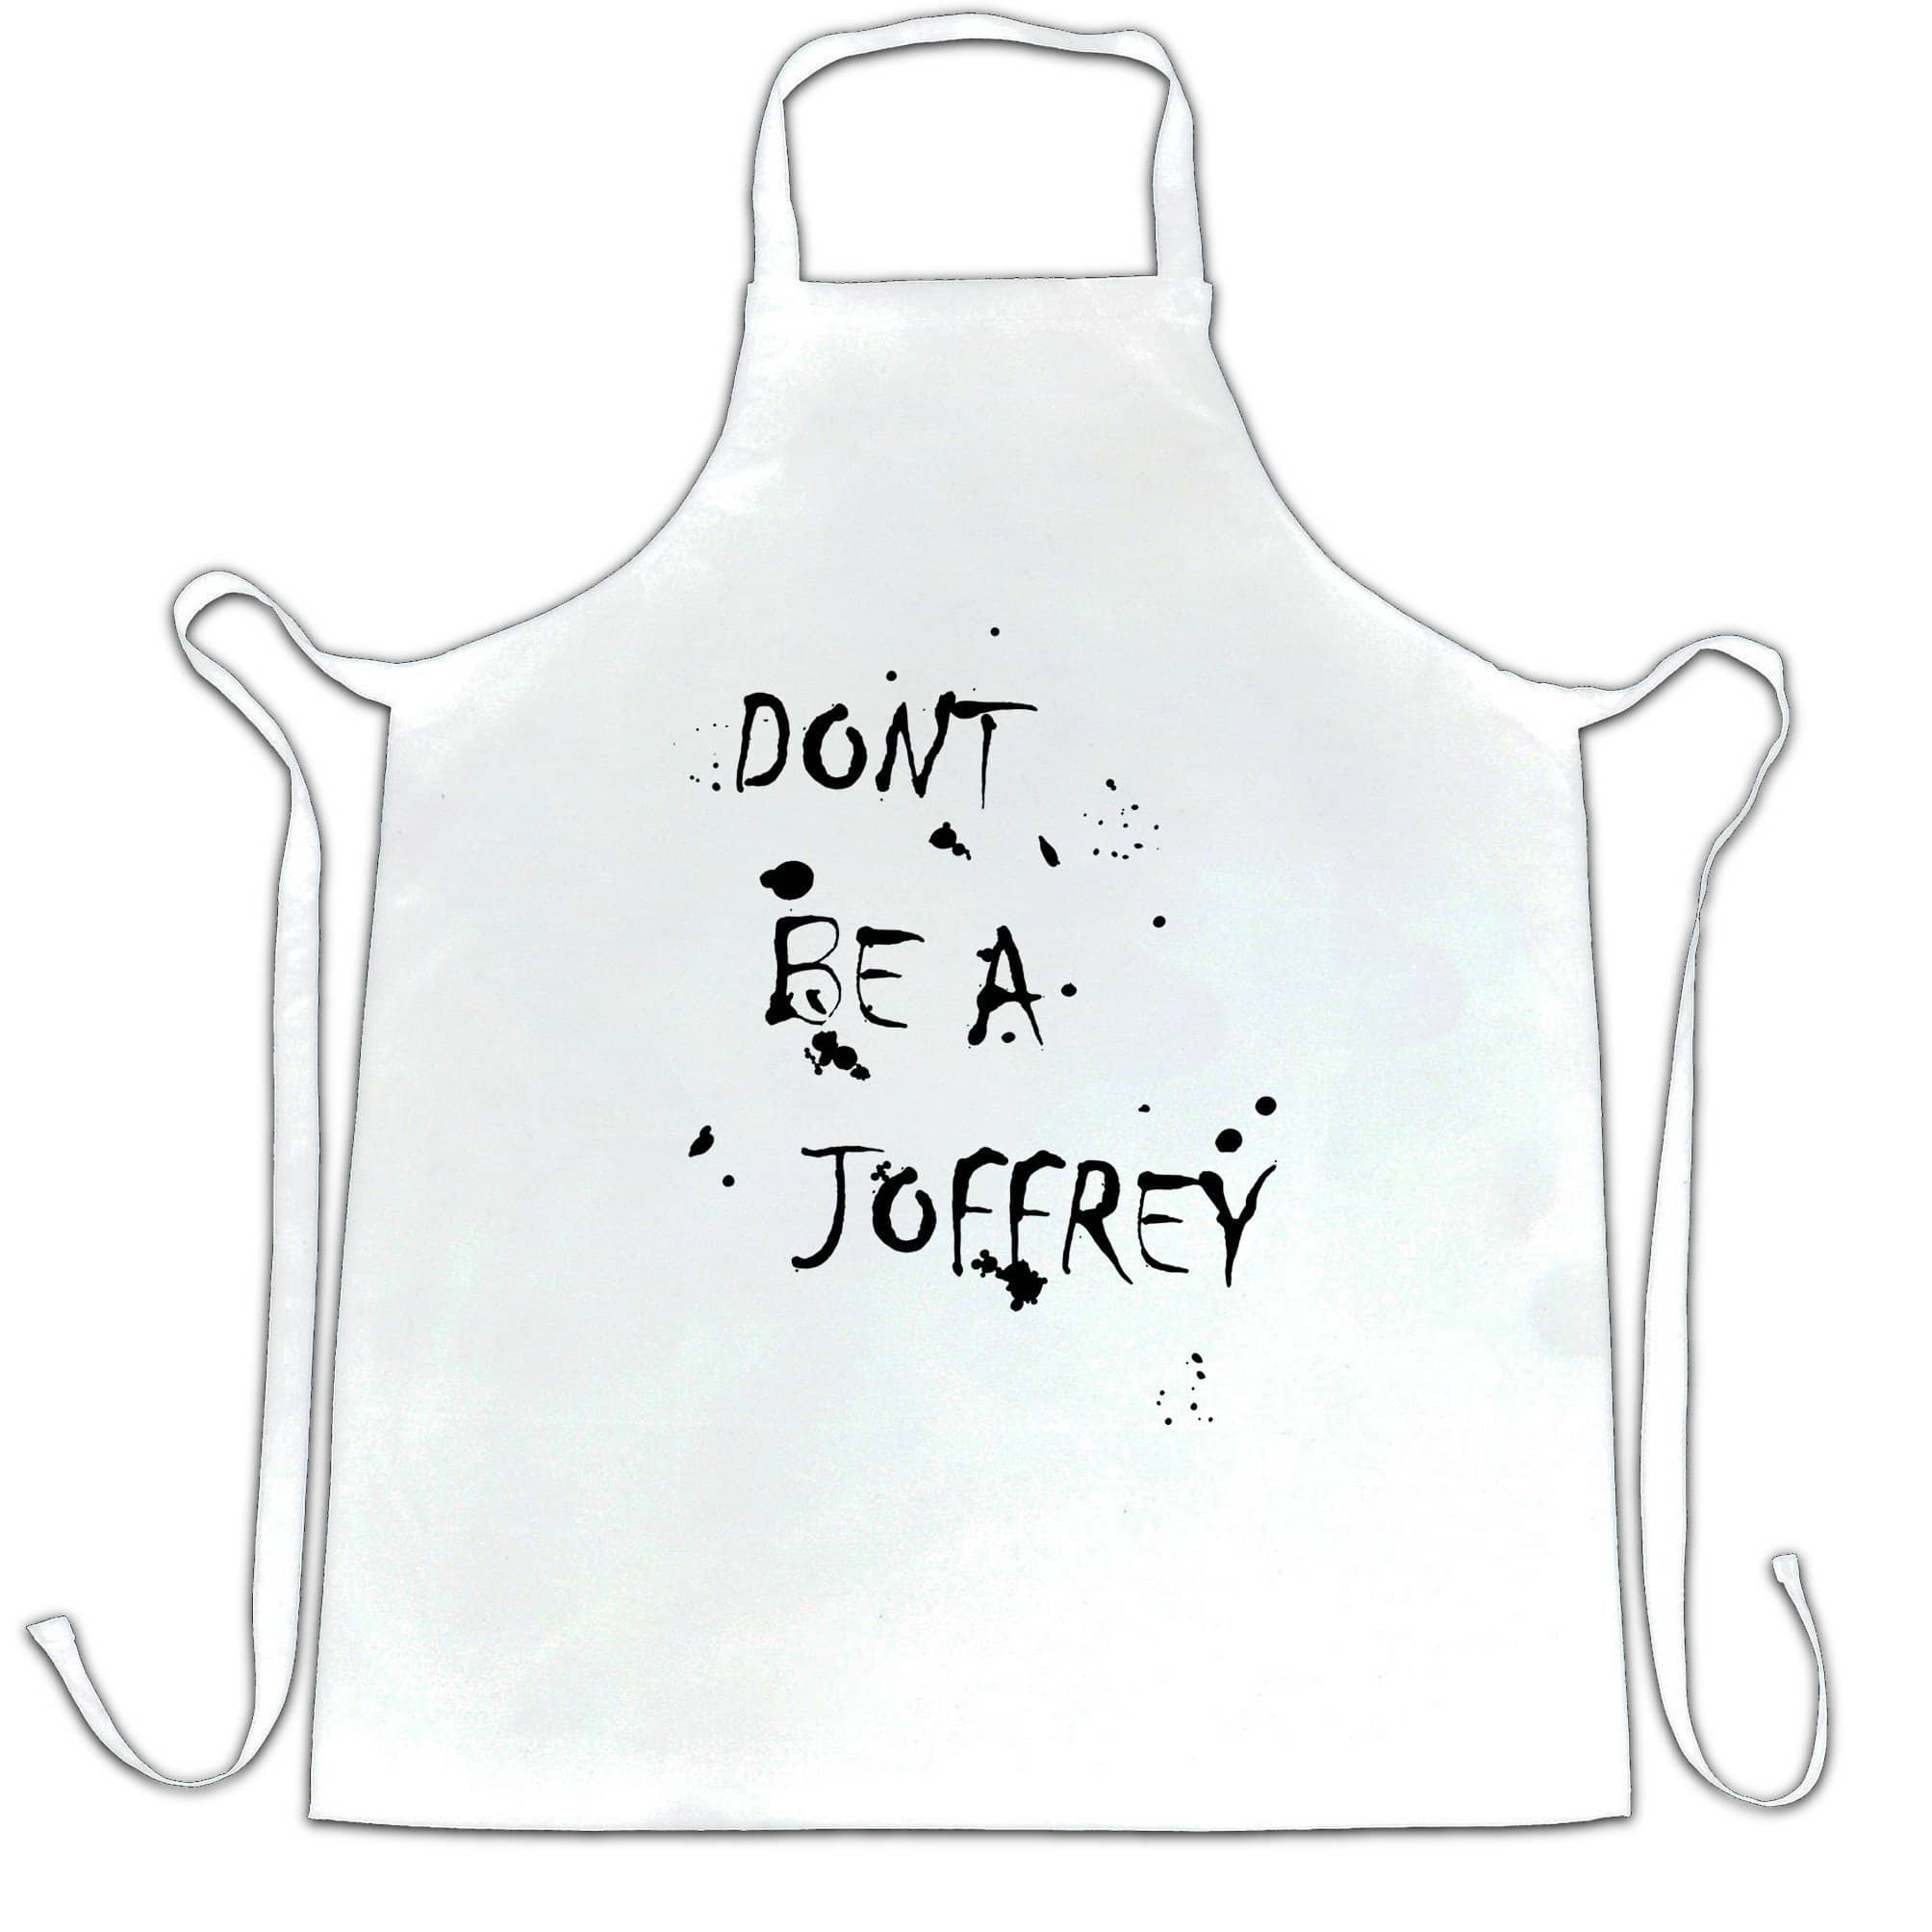 Don't Be a Joffrey Funny Apron